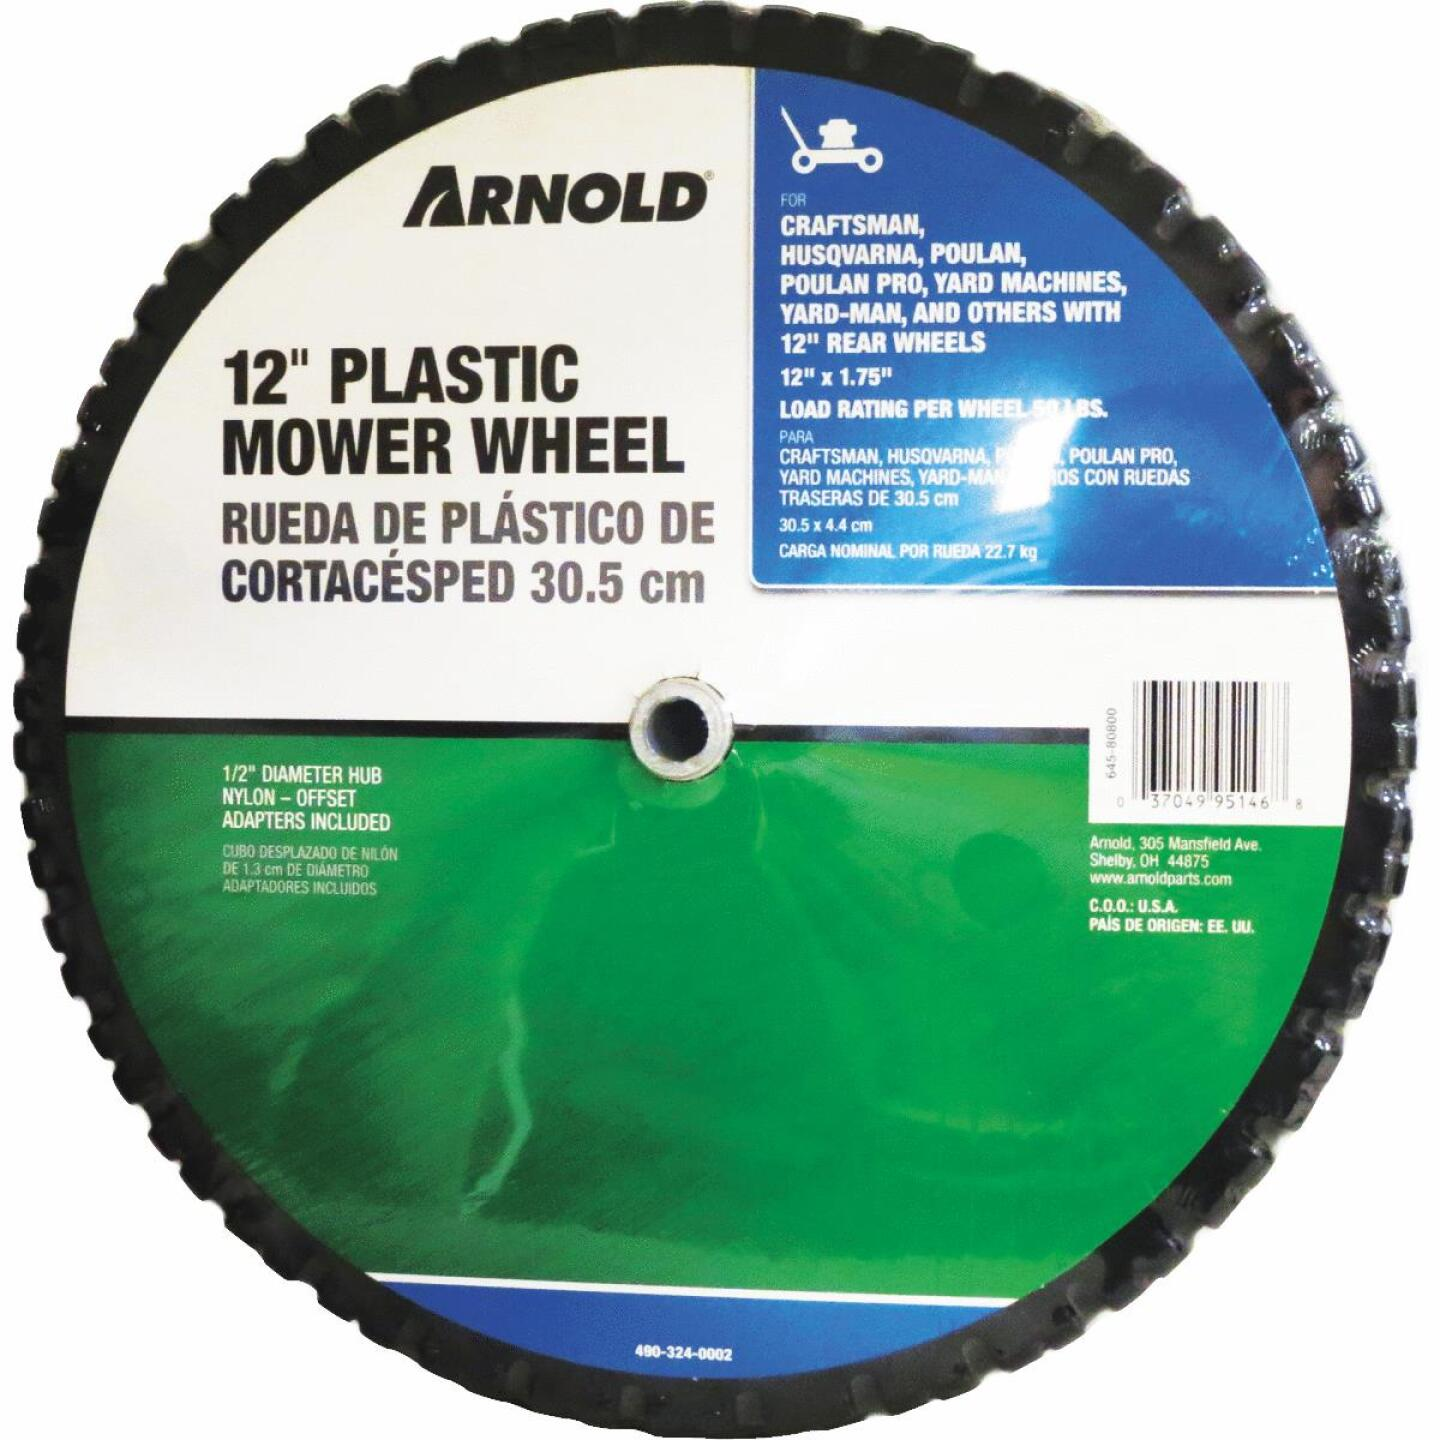 Arnold 12 In. Plastic Mower Wheel Image 1